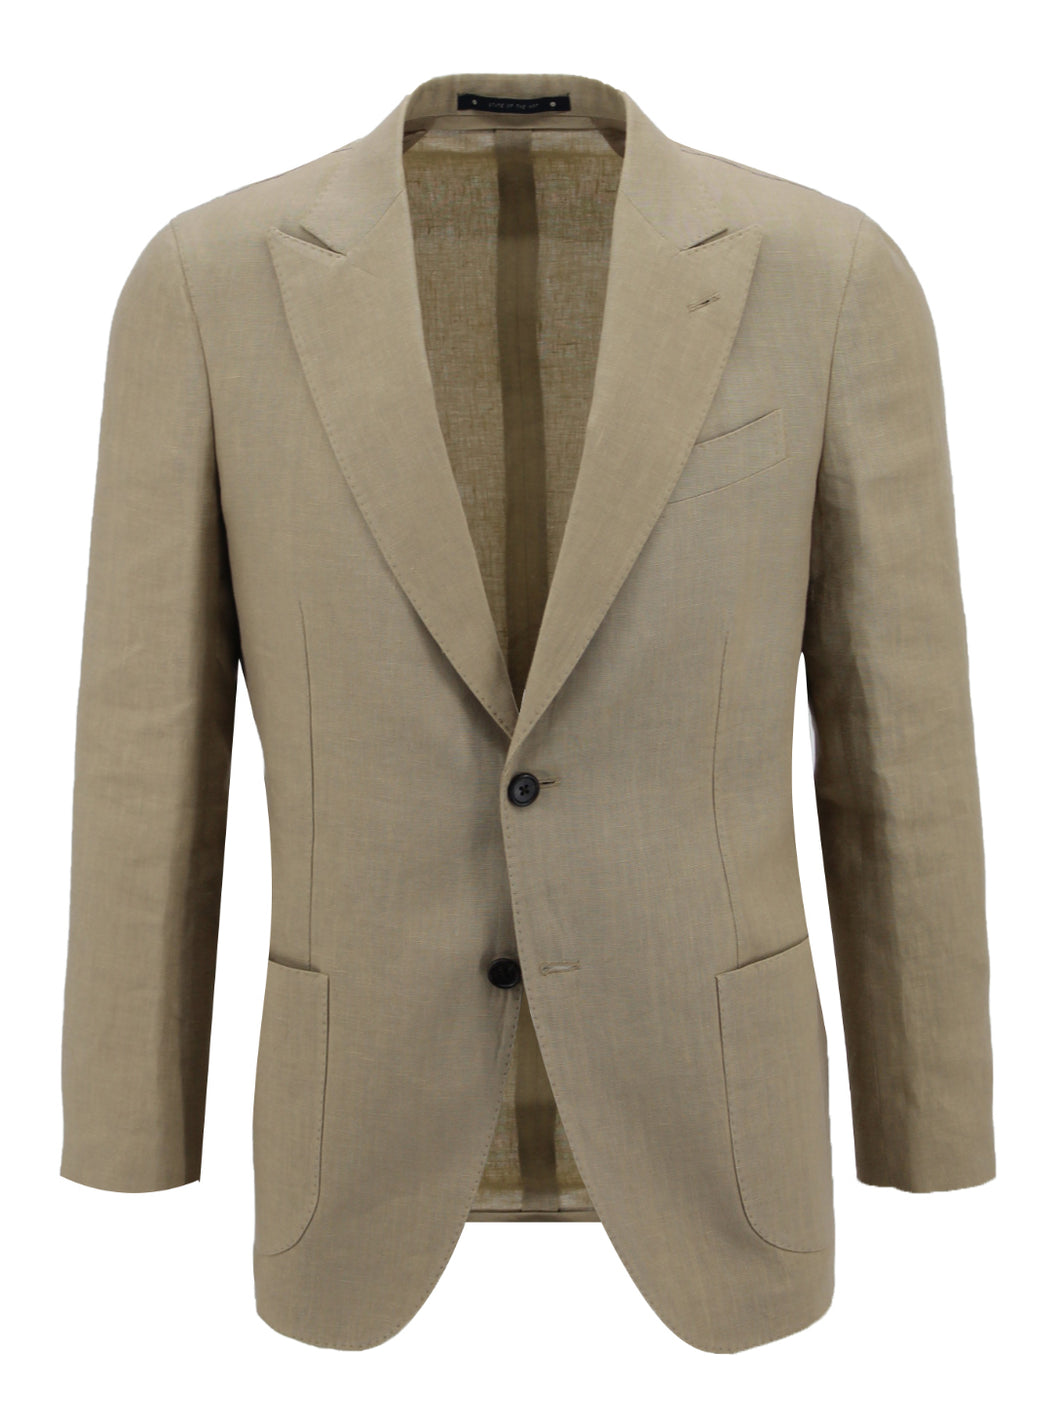 Tan Linen Peak Lapel Suit